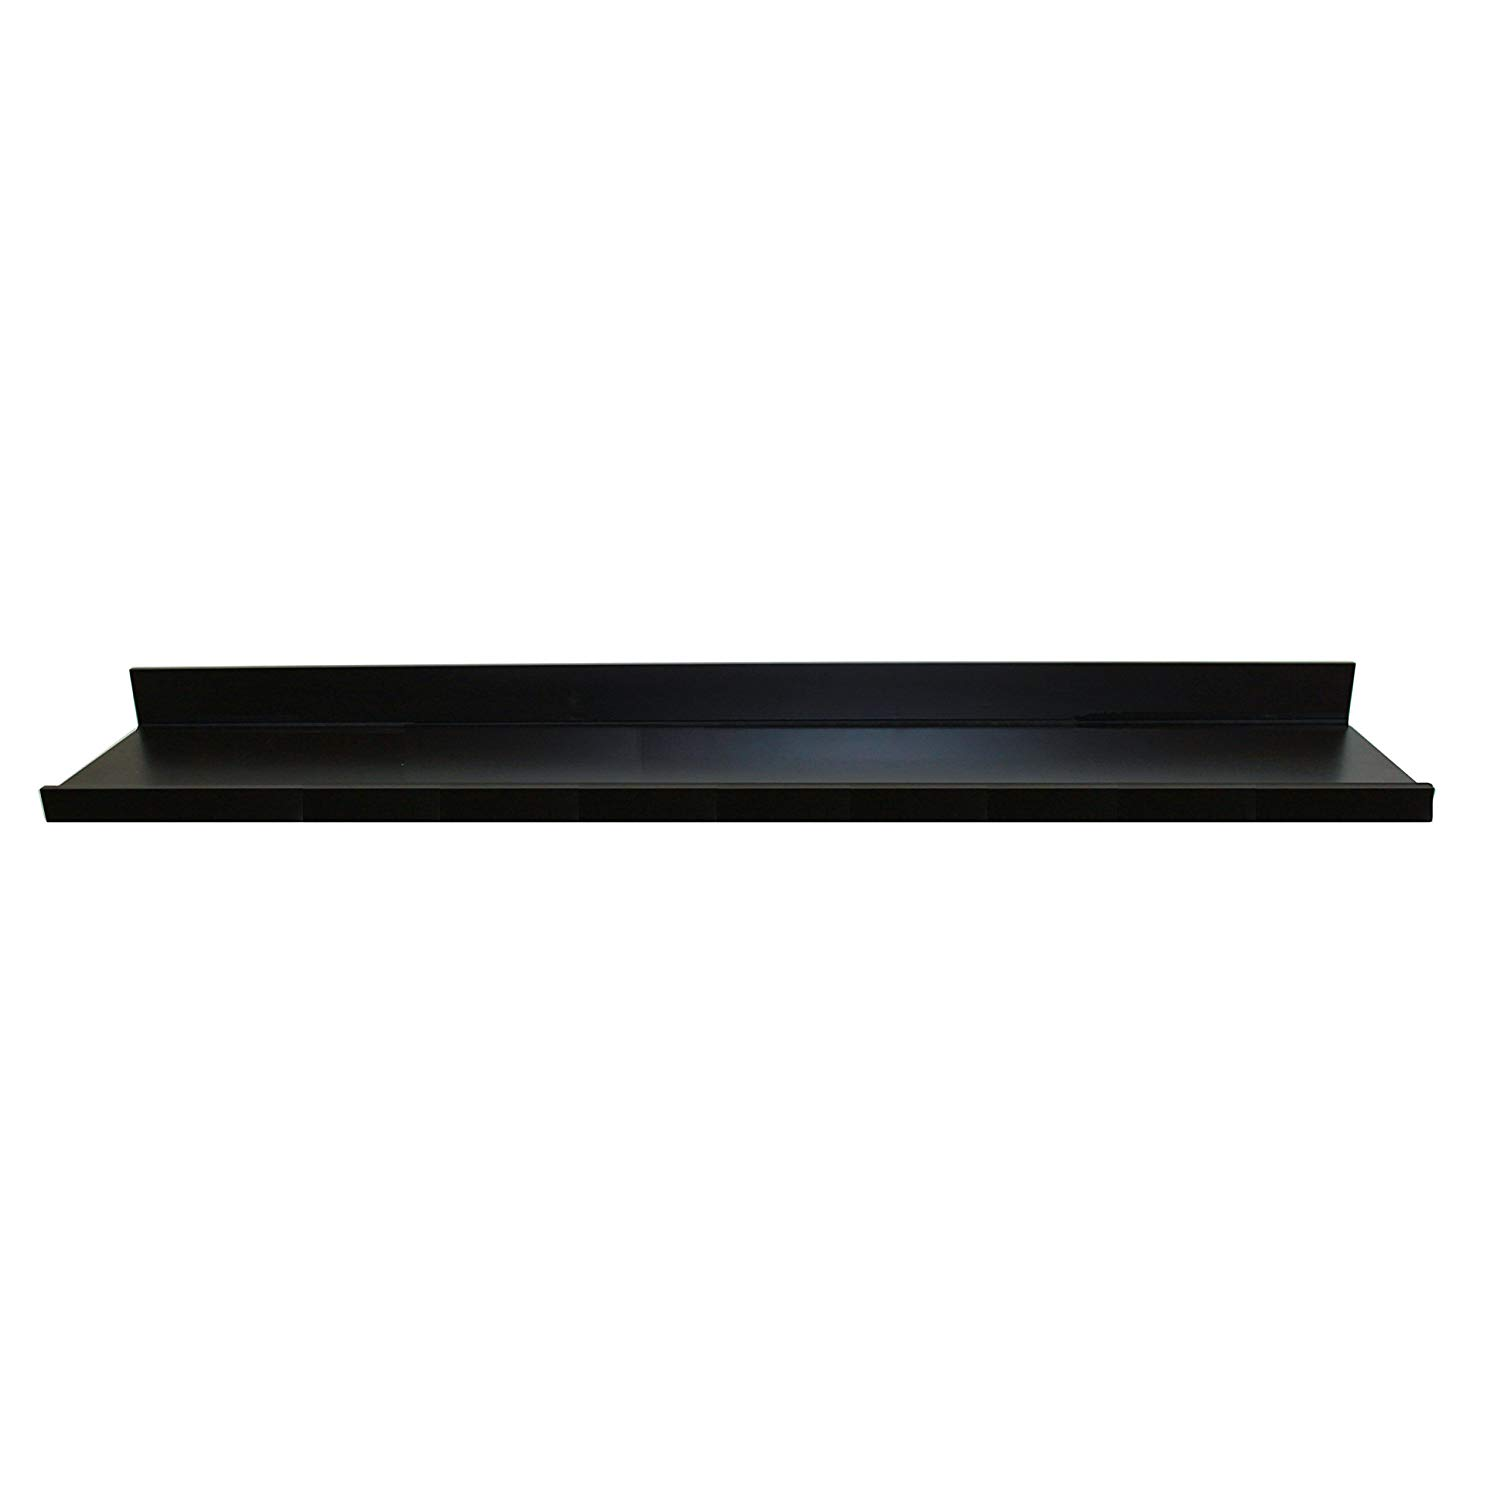 inplace shelving floating wall shelf with black shelves ture ledge inch wide deep high home improvement small compartment kitchen counter unit metal bookcase wood box and for